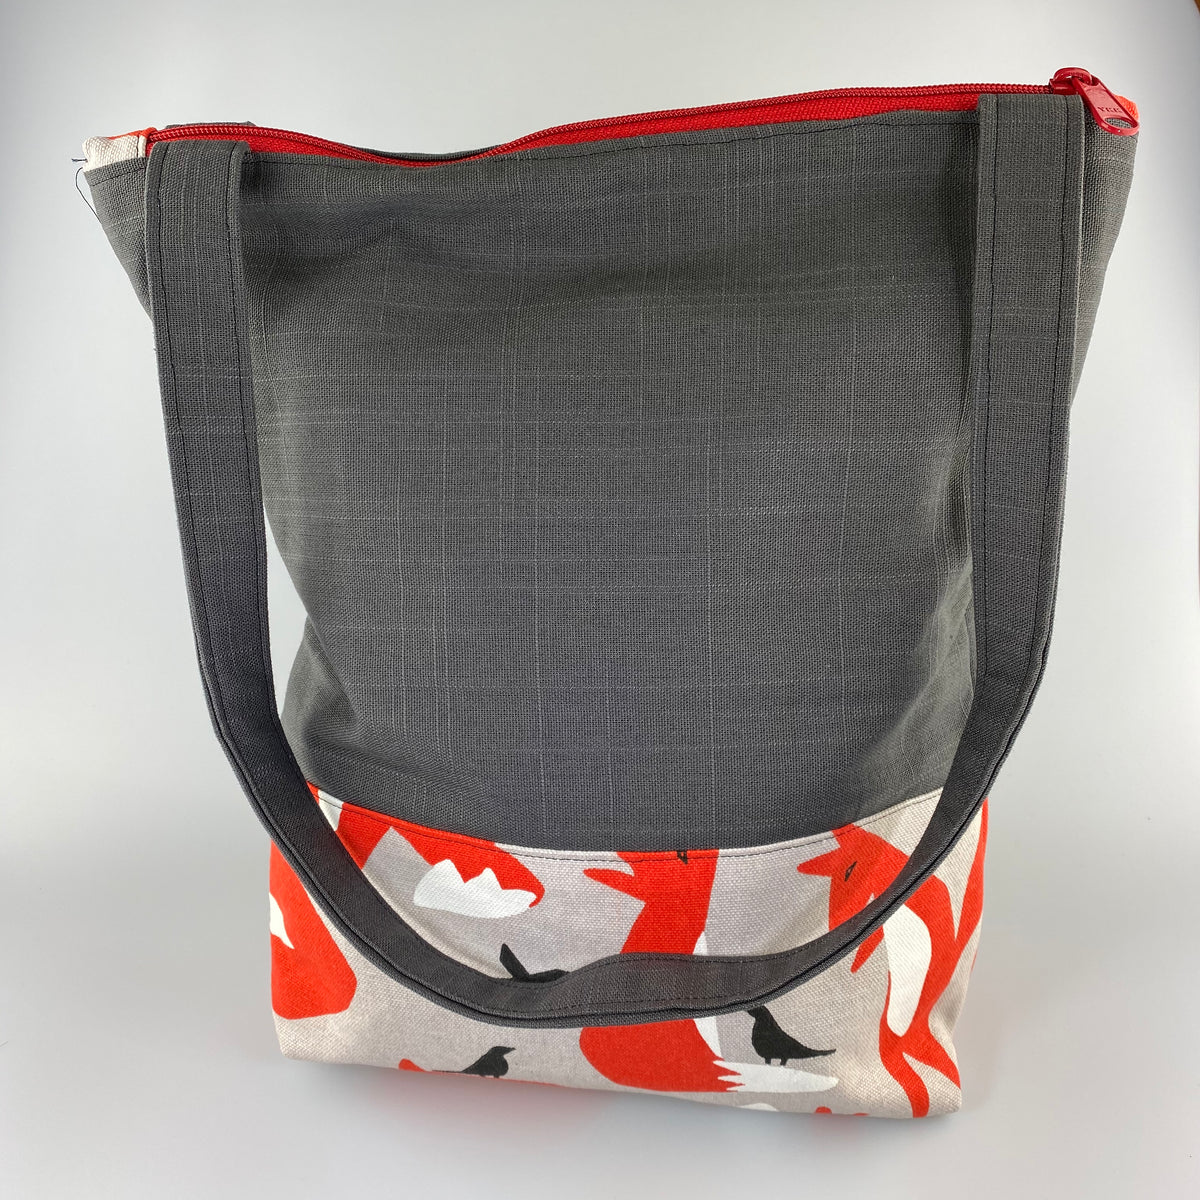 Tall Tote Bag - Heart of the Home PA